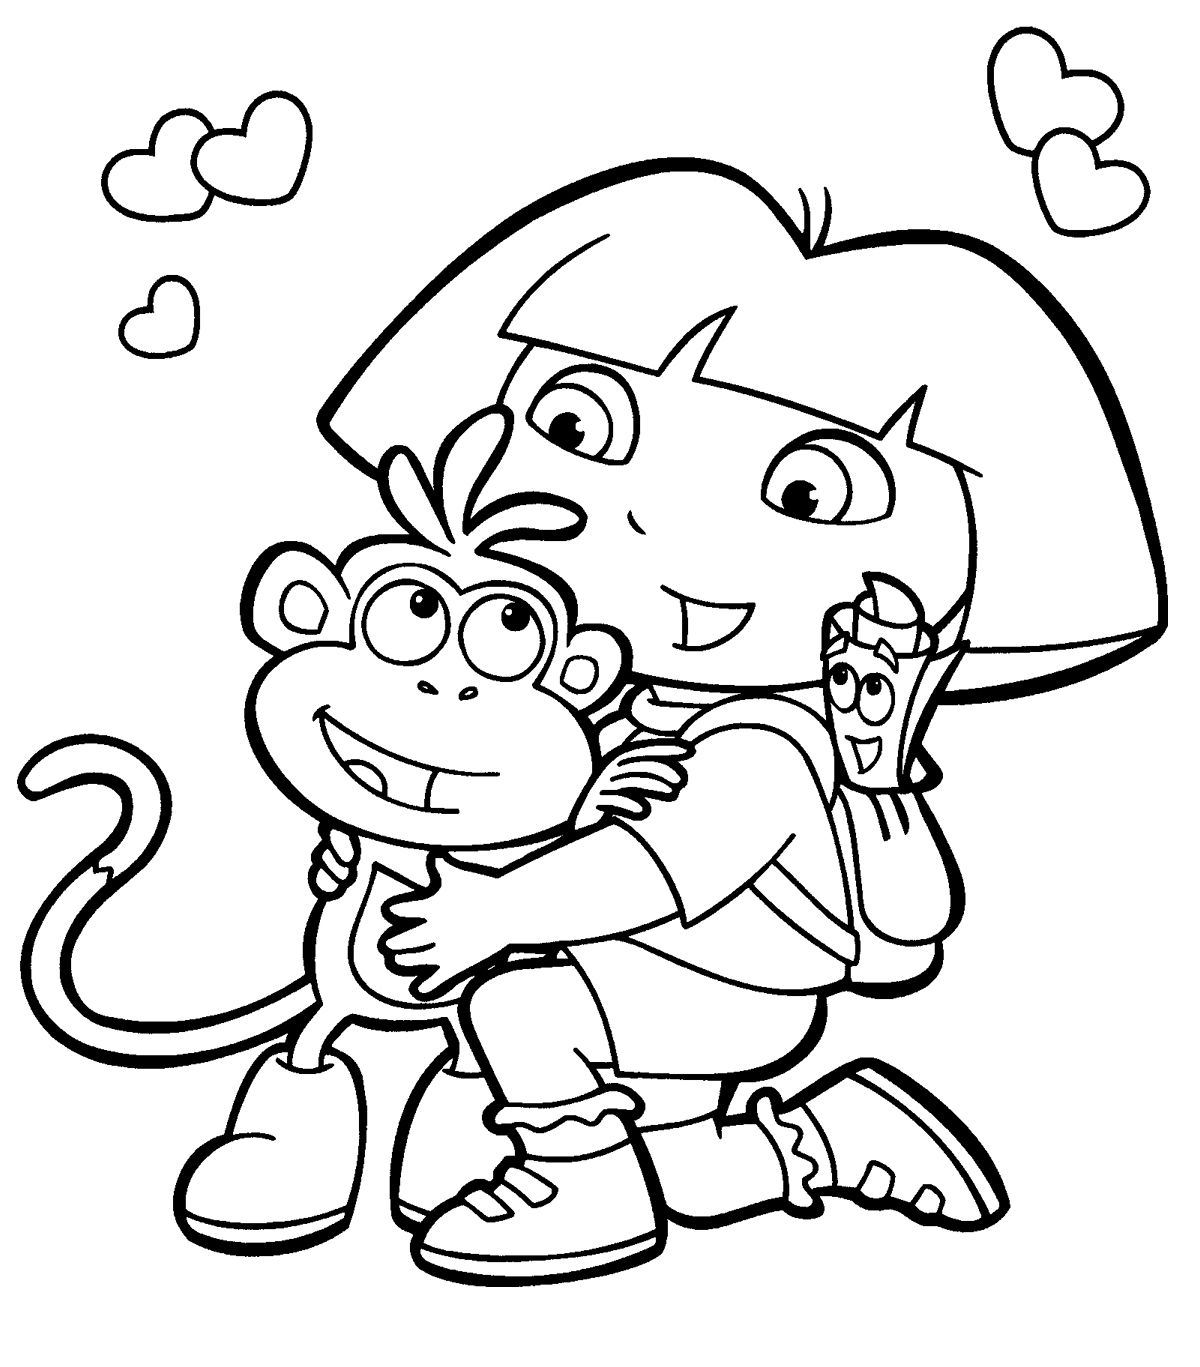 Free Printable Coloring Pages - Free Printable Dora the Explorer Coloring Pages for Kids